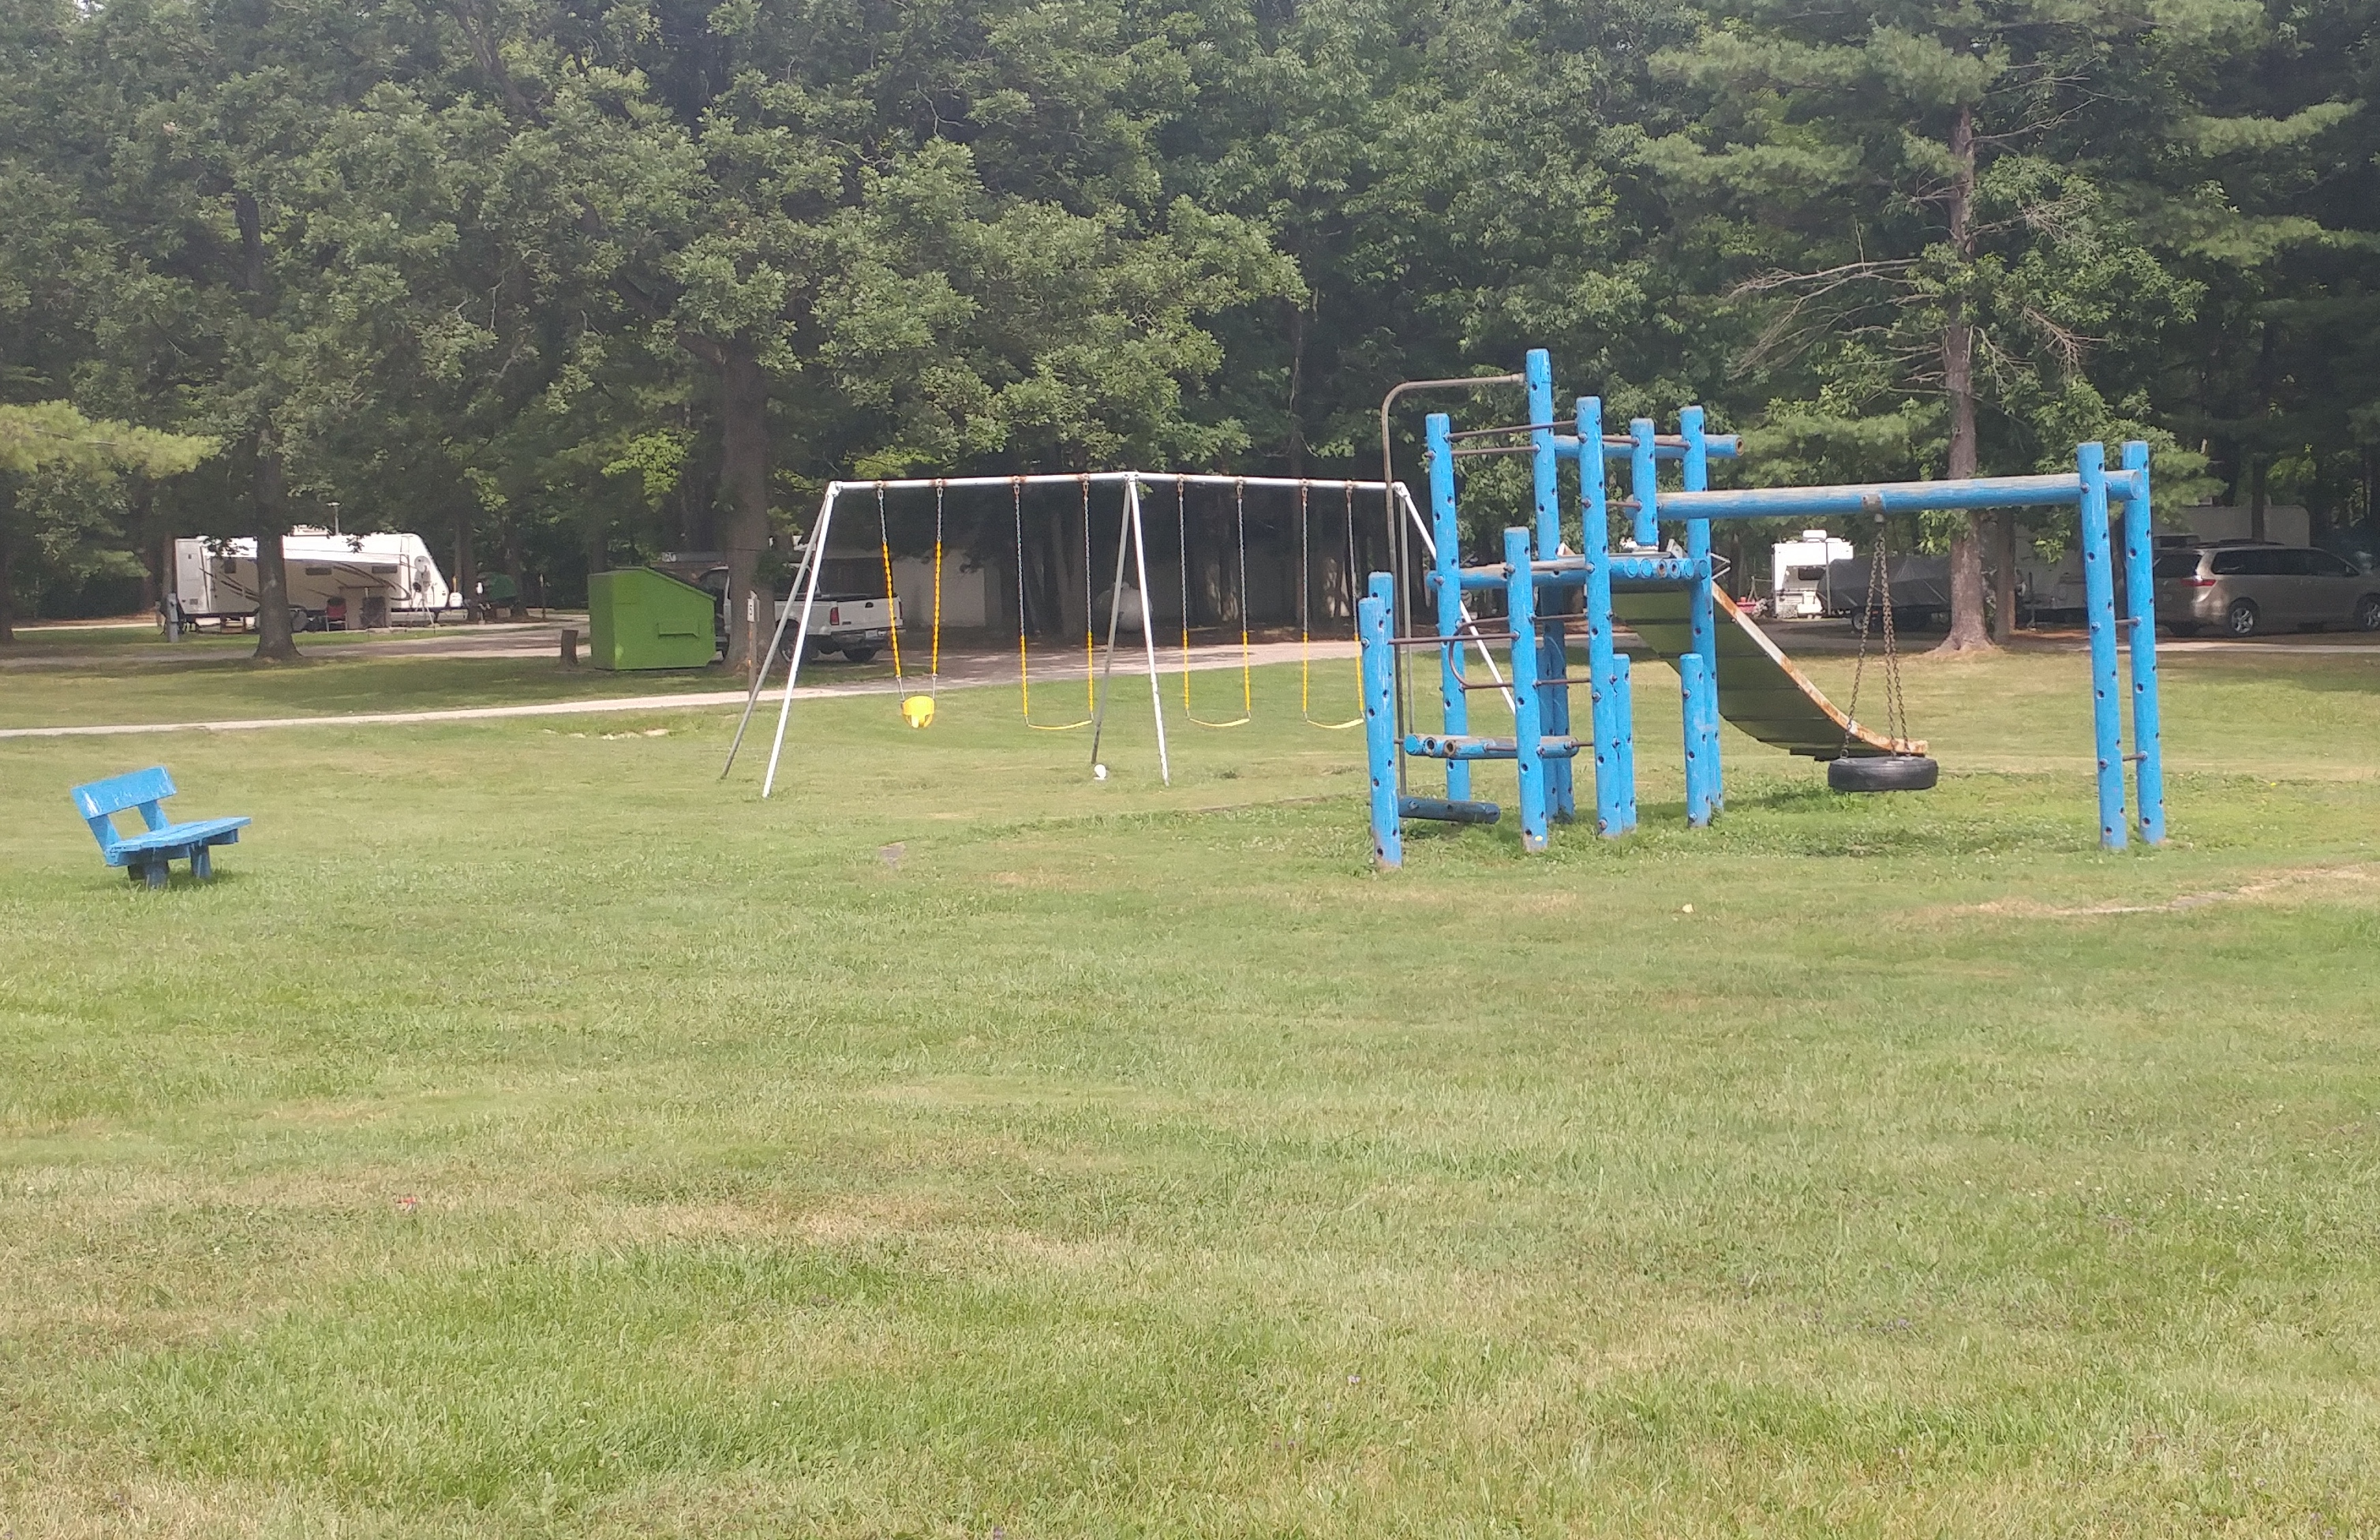 2 sections of kids playgrounds!